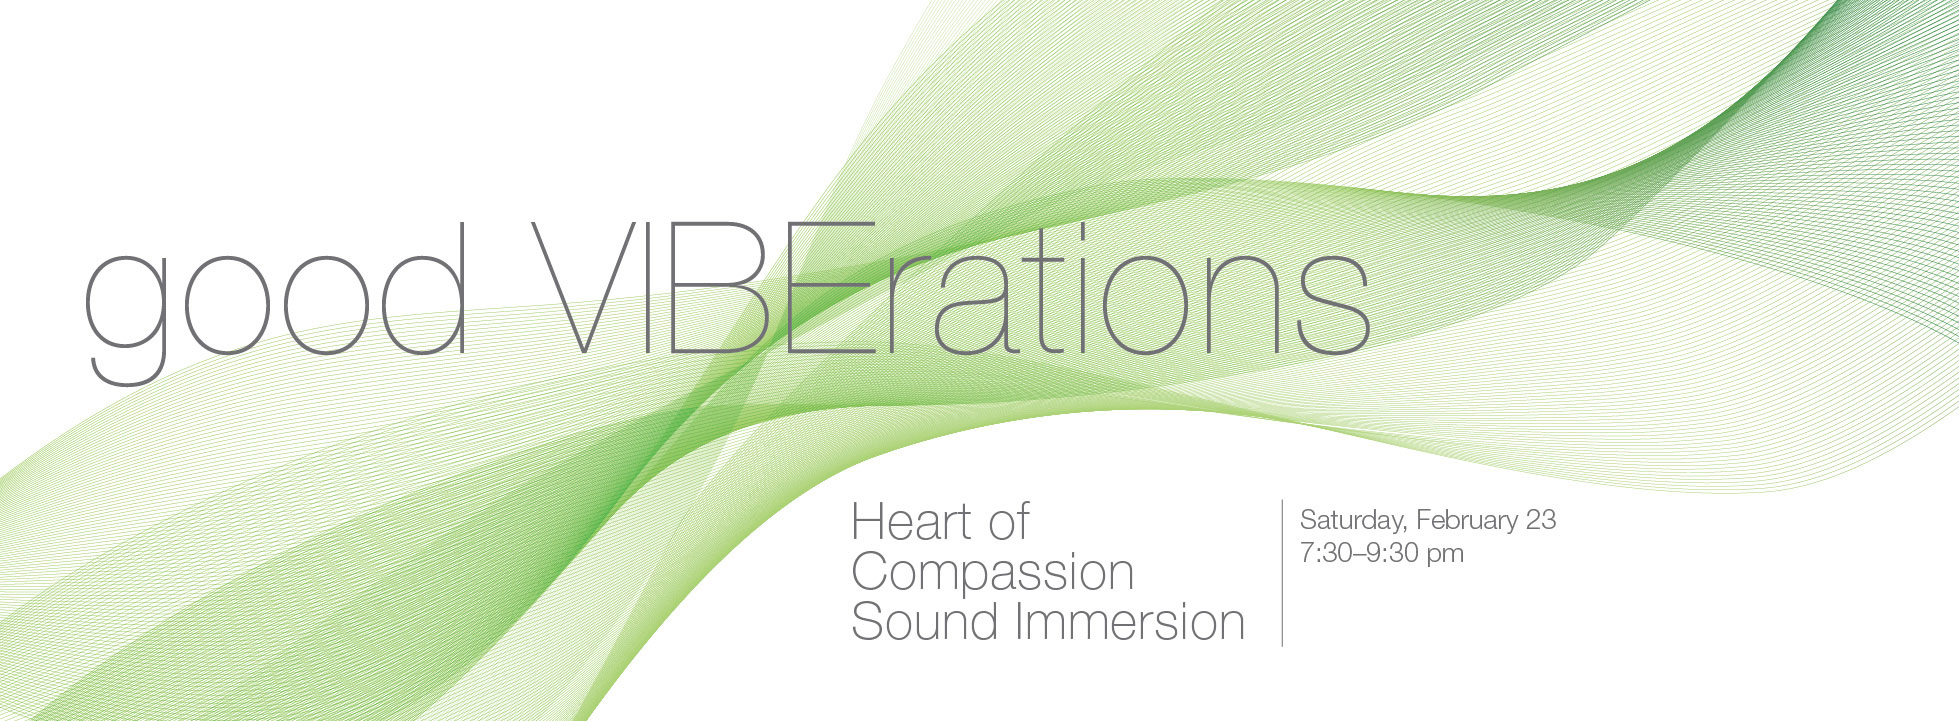 good-viberations-heart-of-compassion-web